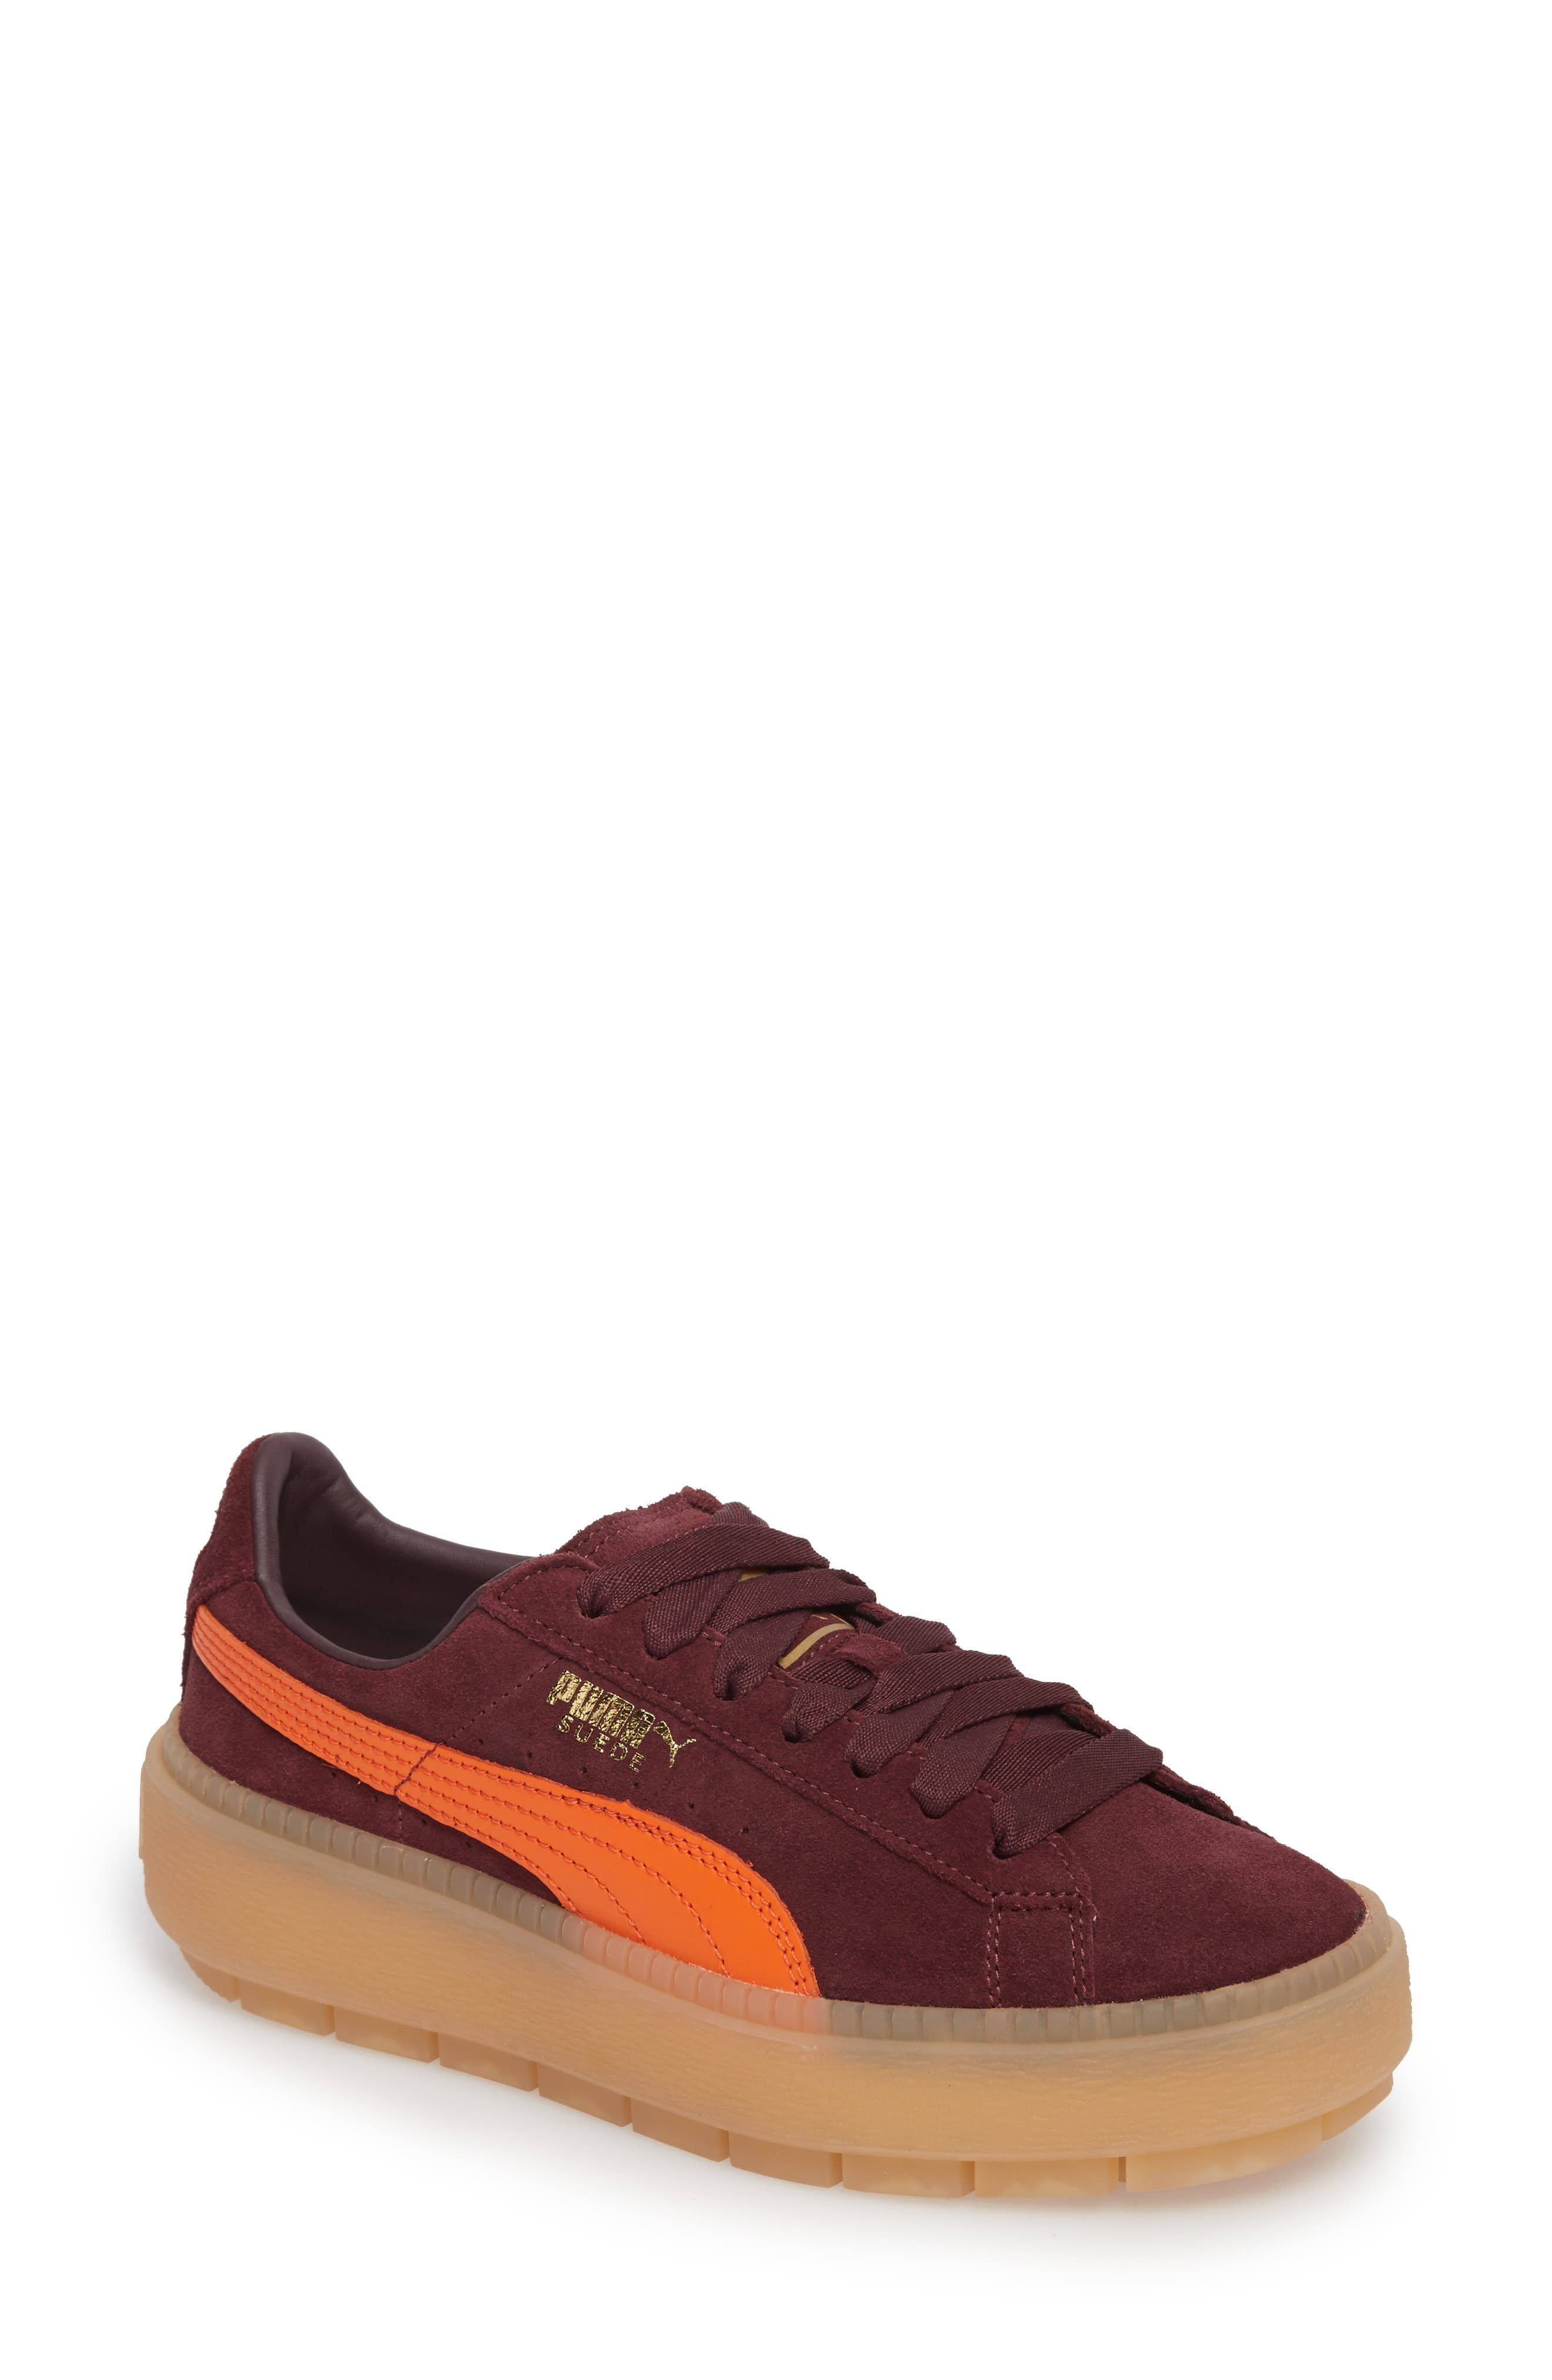 puma shoes suede burgundy skirt and tank